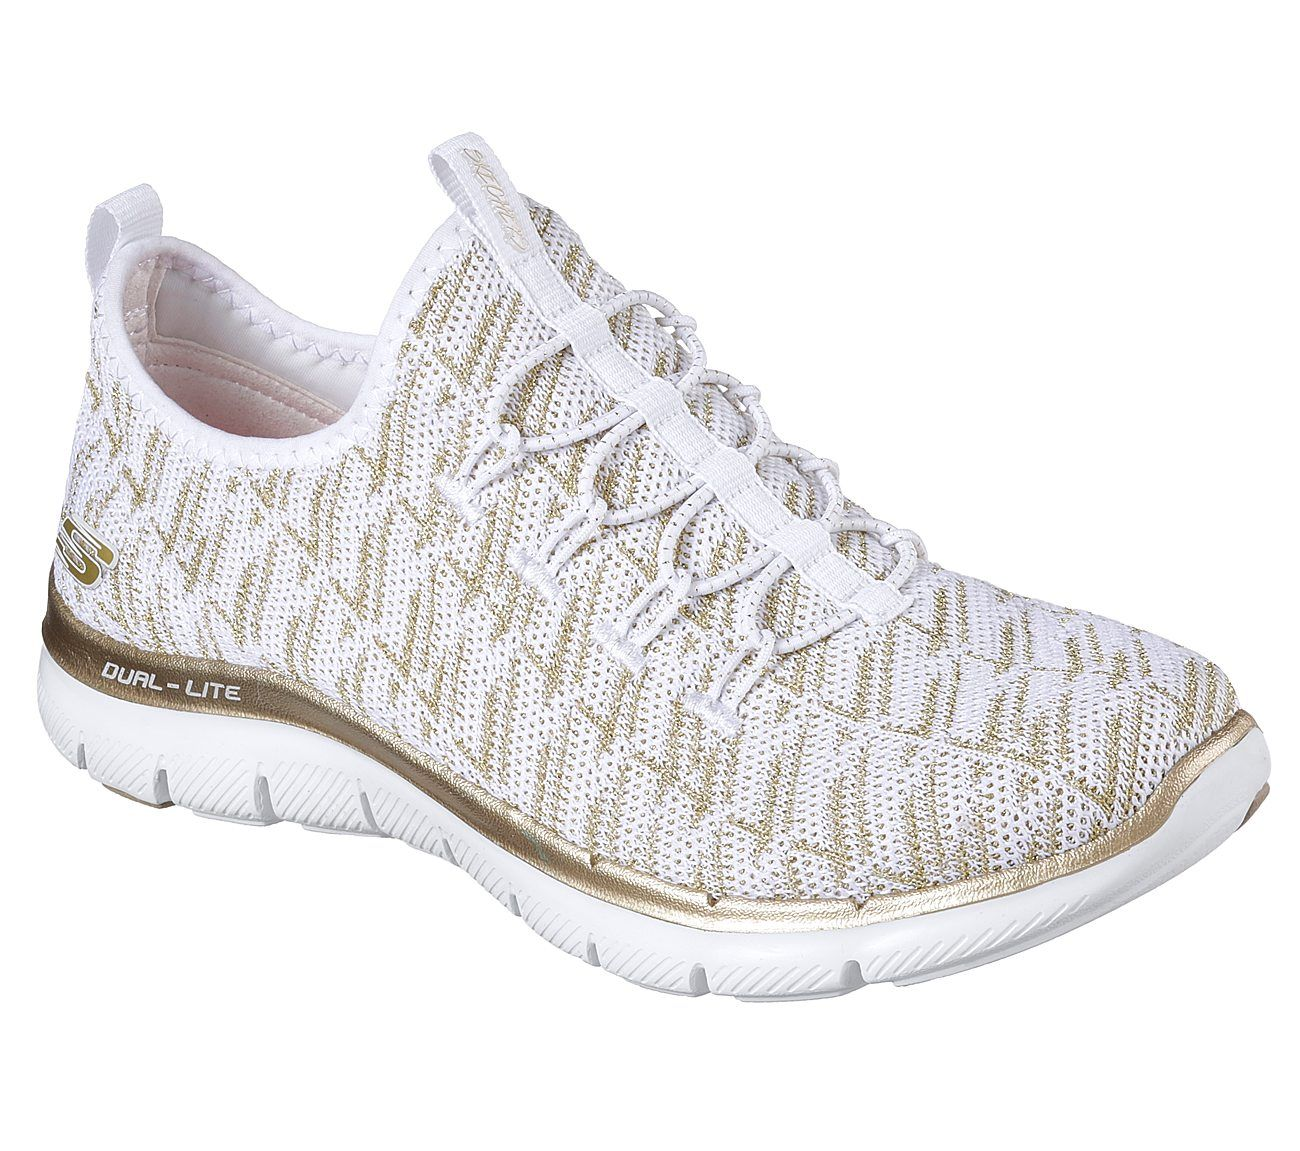 dd57bd405a8 Amazing socklike comfort and sporty style are yours with the SKECHERS Flex  Appeal 2.0 - Insights shoe. Nearly one piece athletic knit fabric upper in  a slip ...